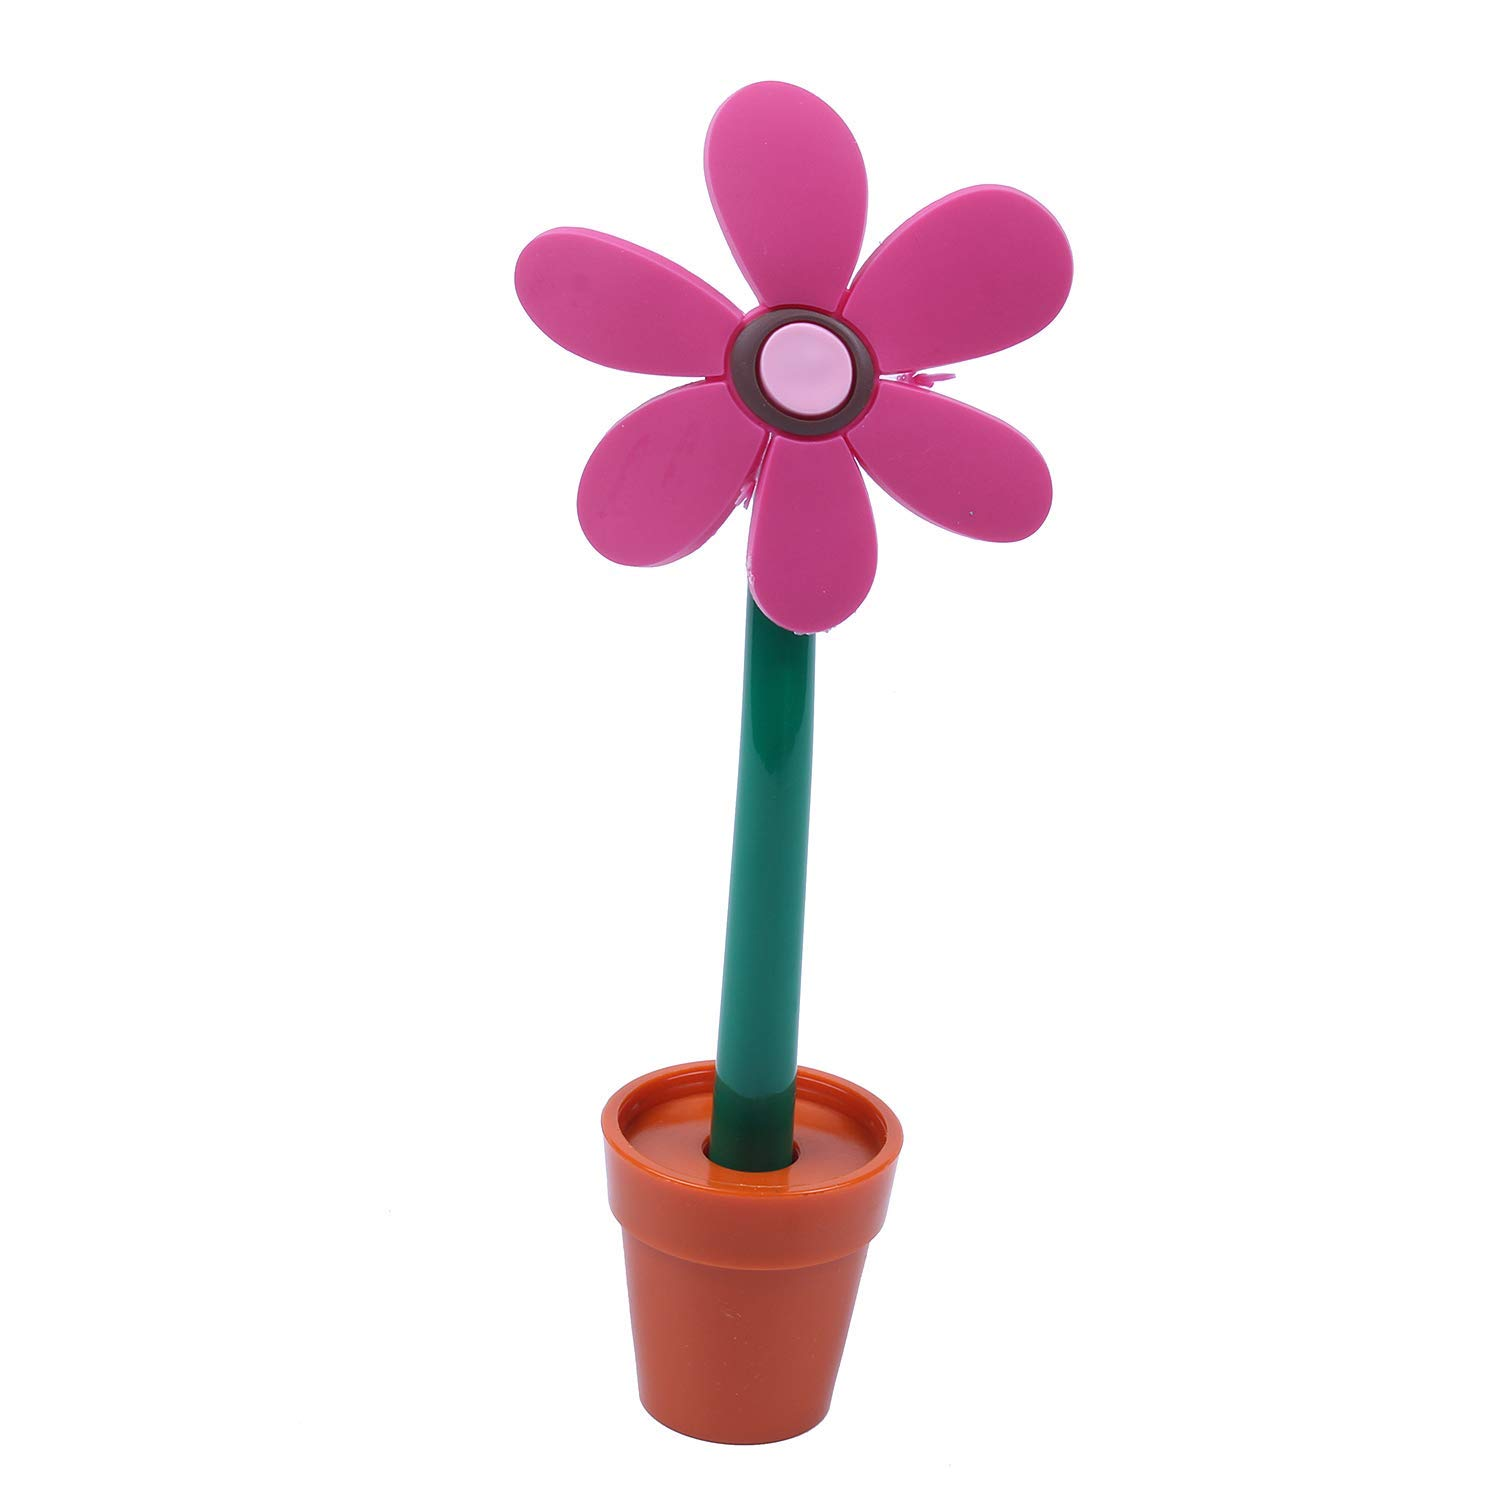 SODIAL(R) Novelty Cute Flower Pot Ballpoint Lovely Sunflower Students Stationery Pen Creative School Supplies Kids rose Red